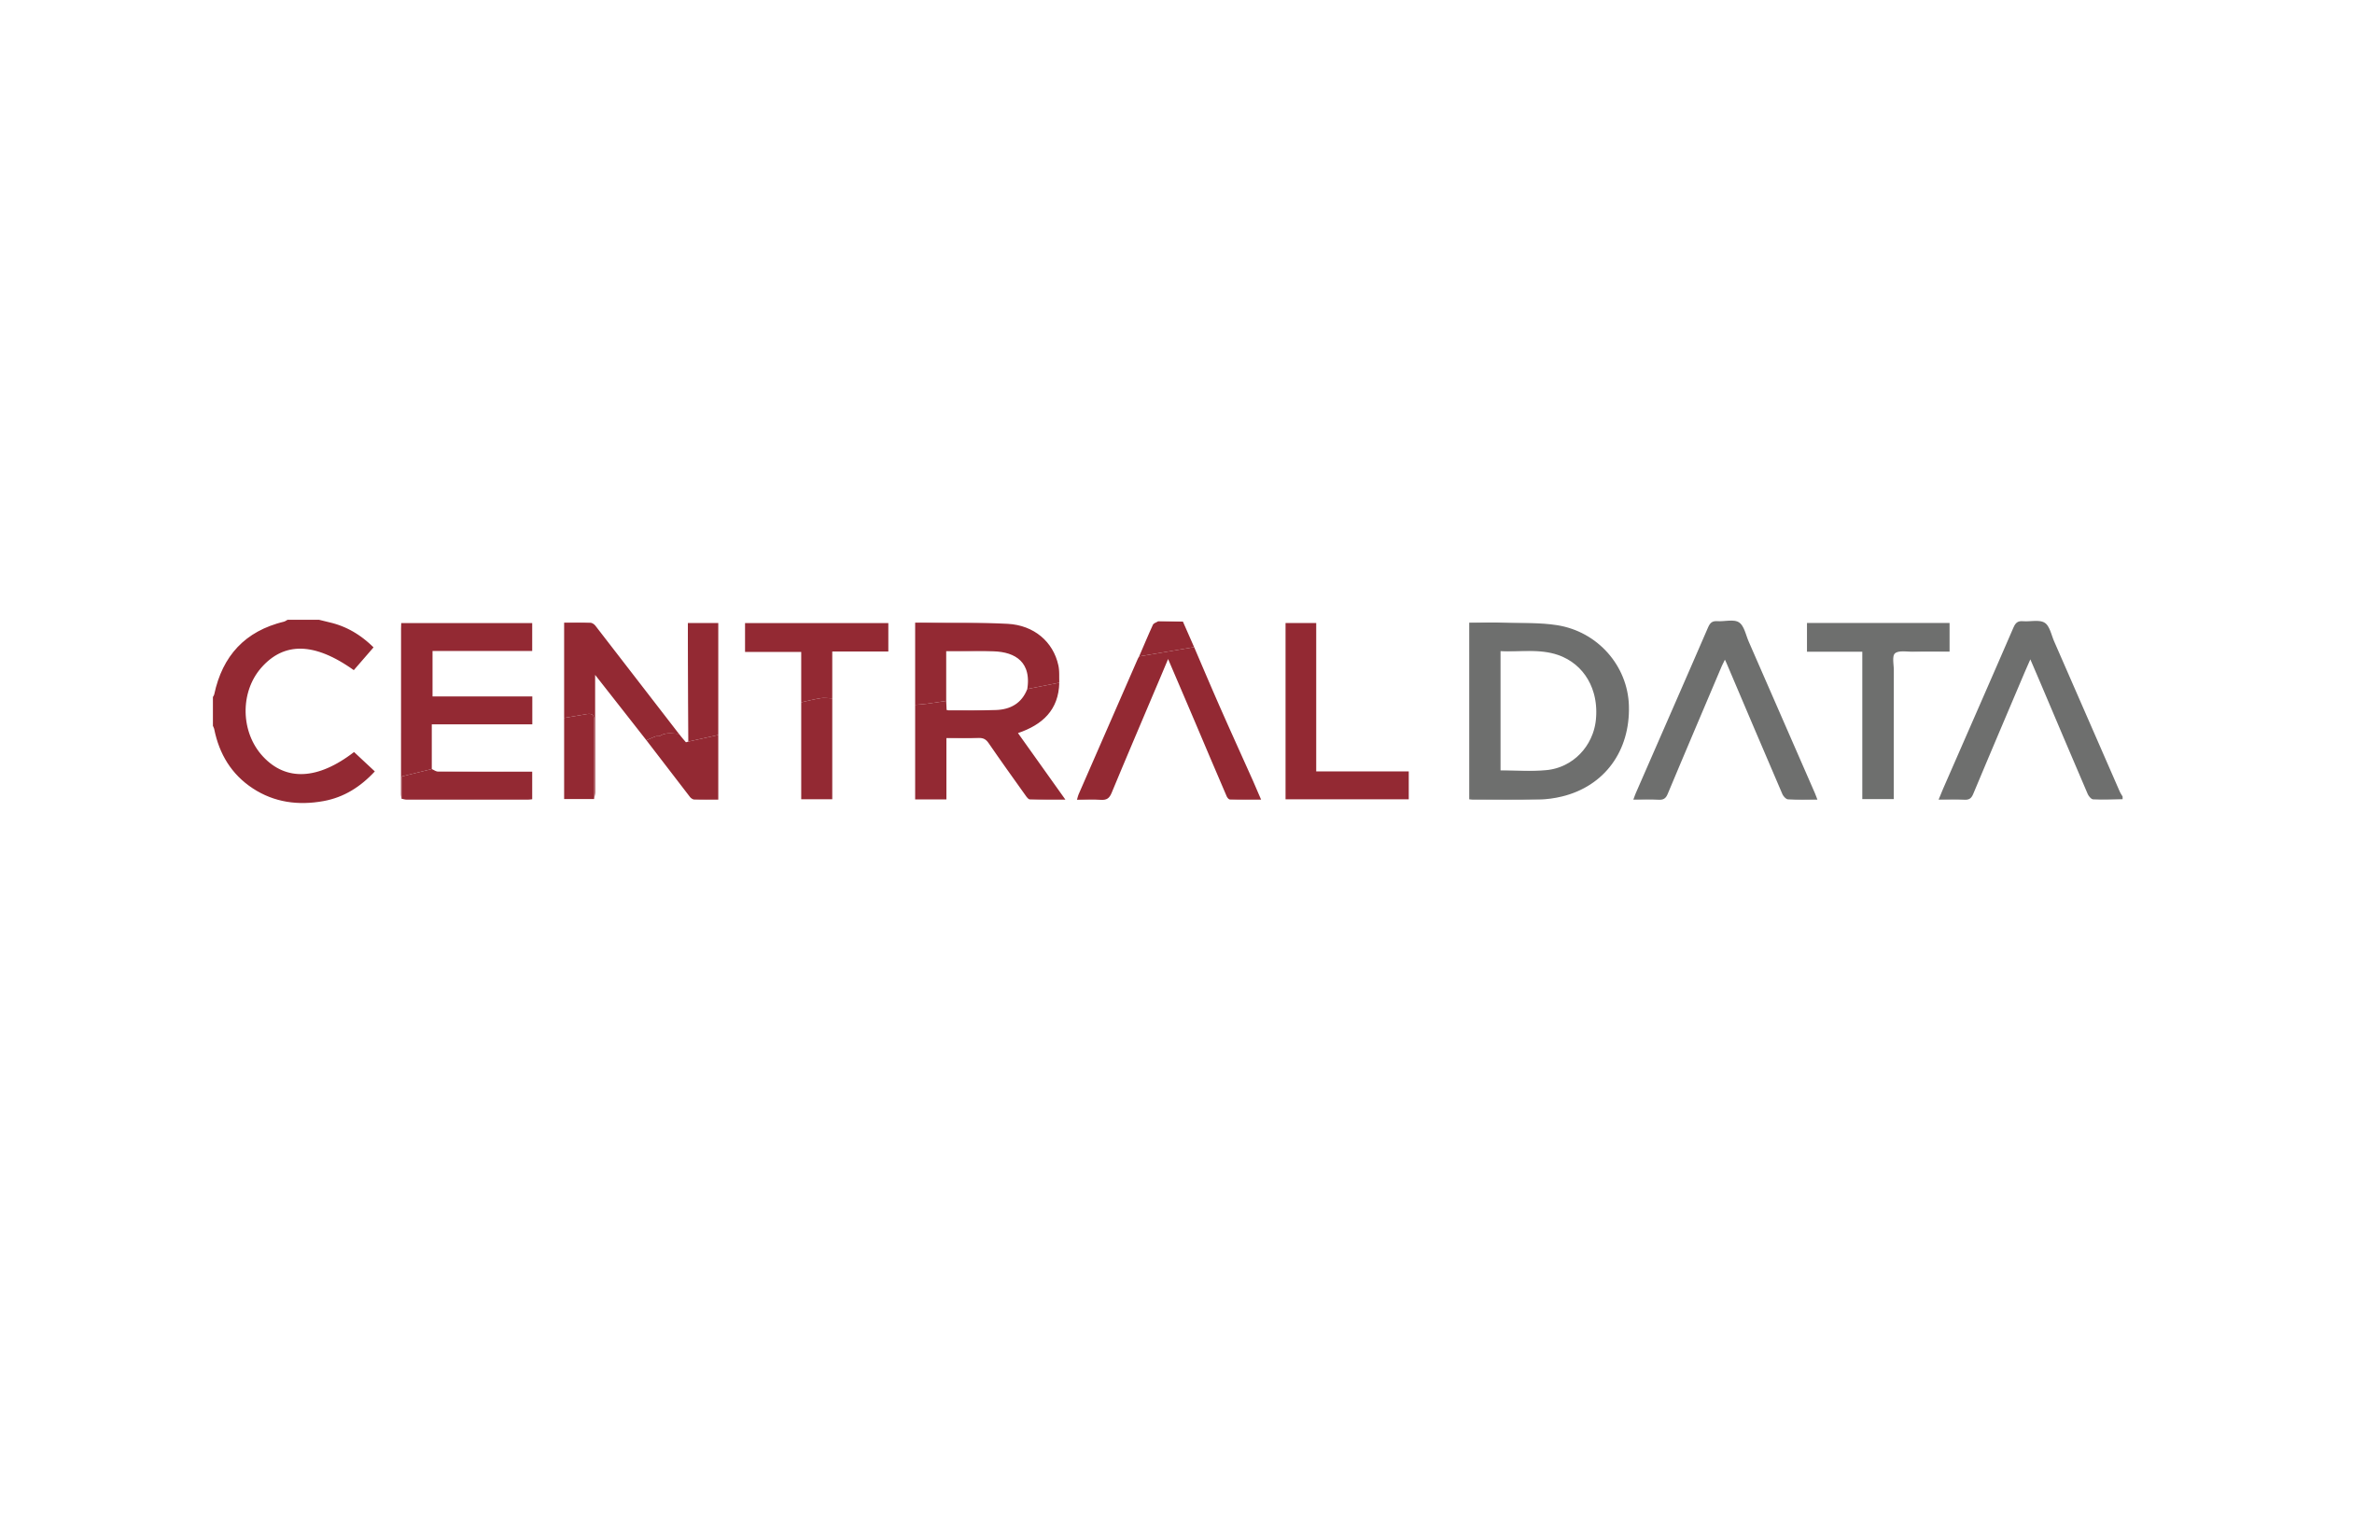 Central Data Recognized by Infor as 2020 Partner of the Year for North America Distribution Channel